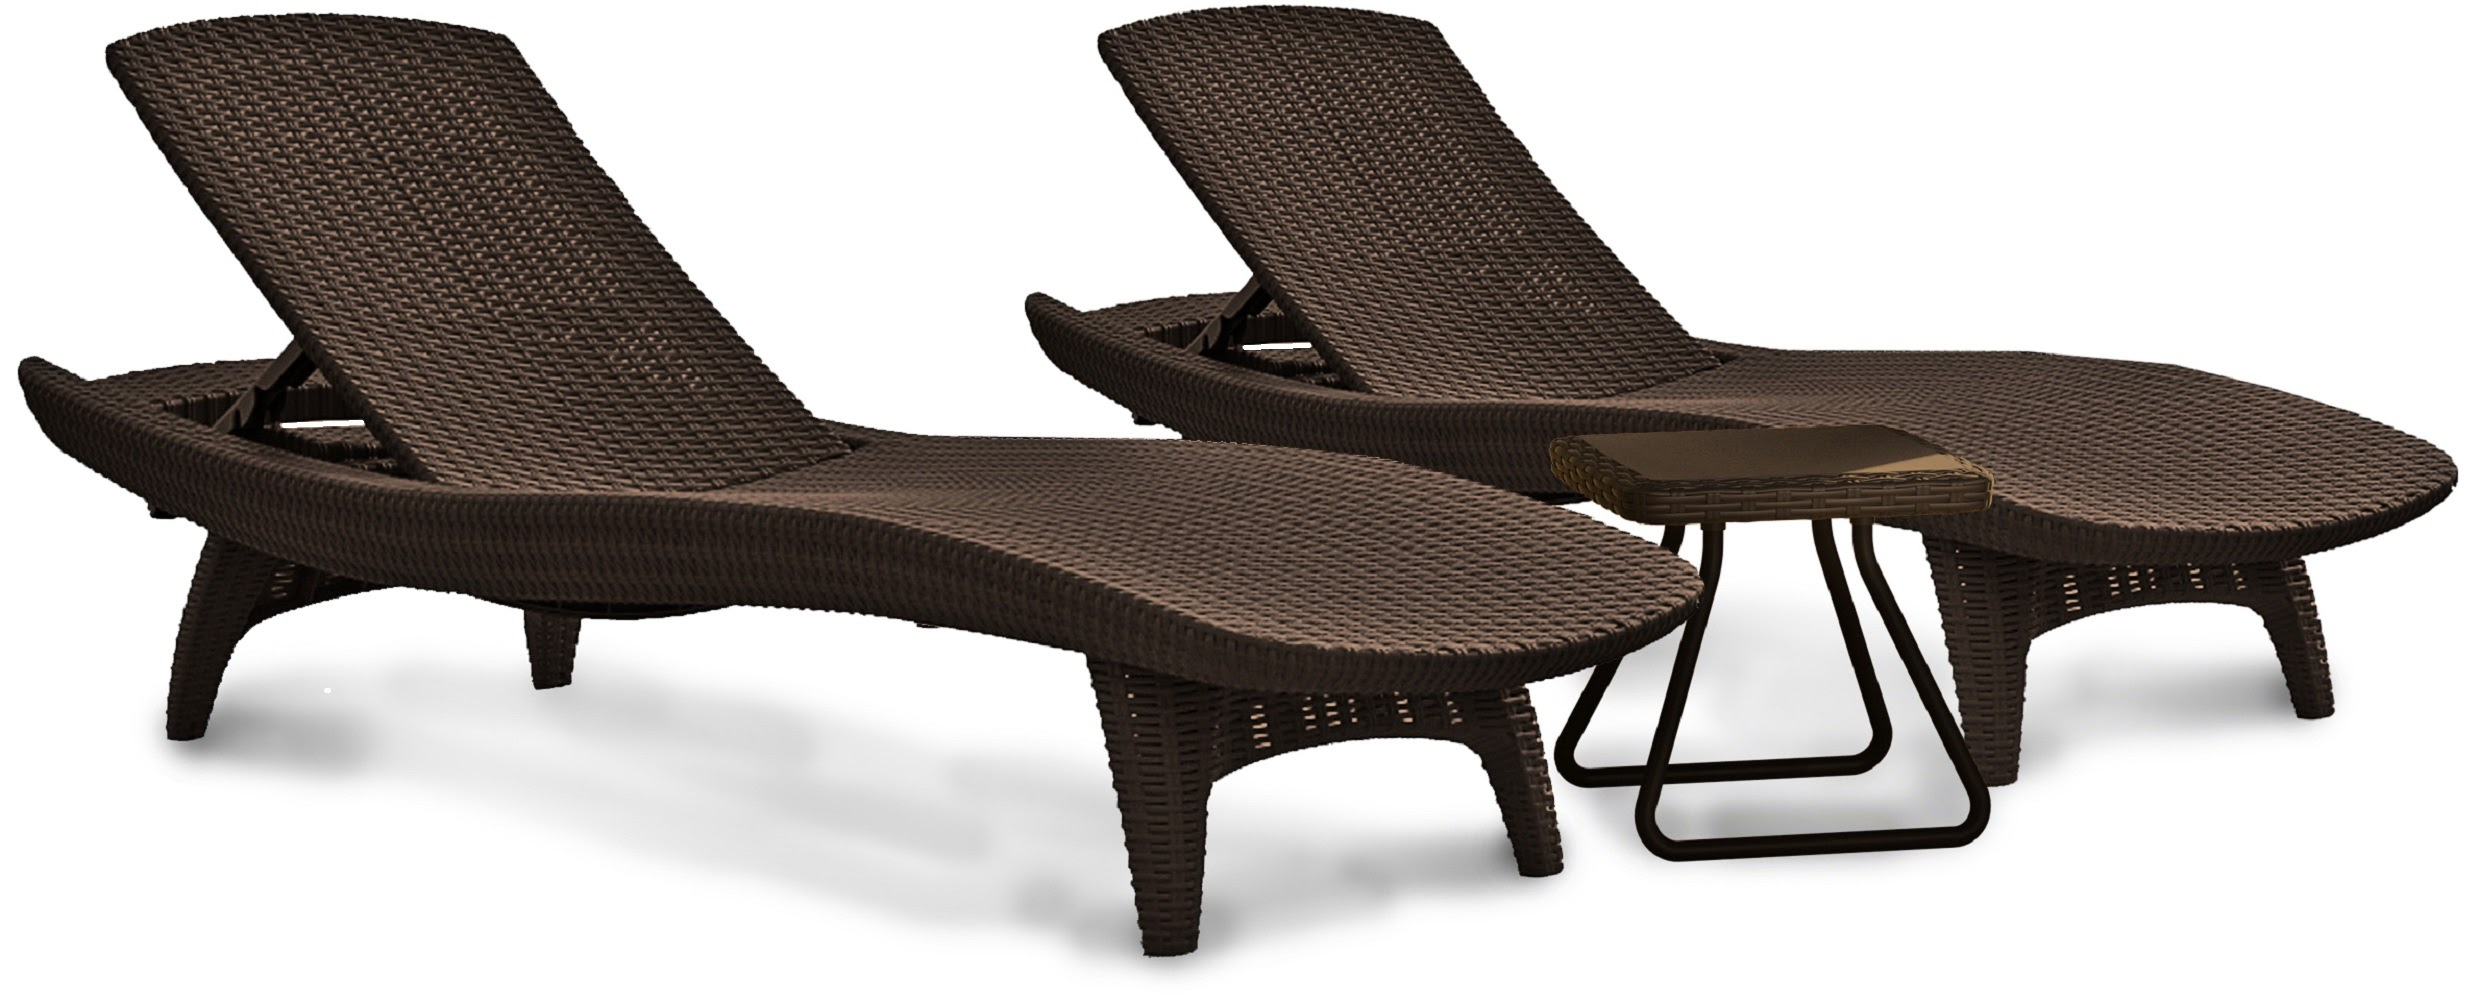 Keter Pacific Chaise Sun Lounger and Side Table Set